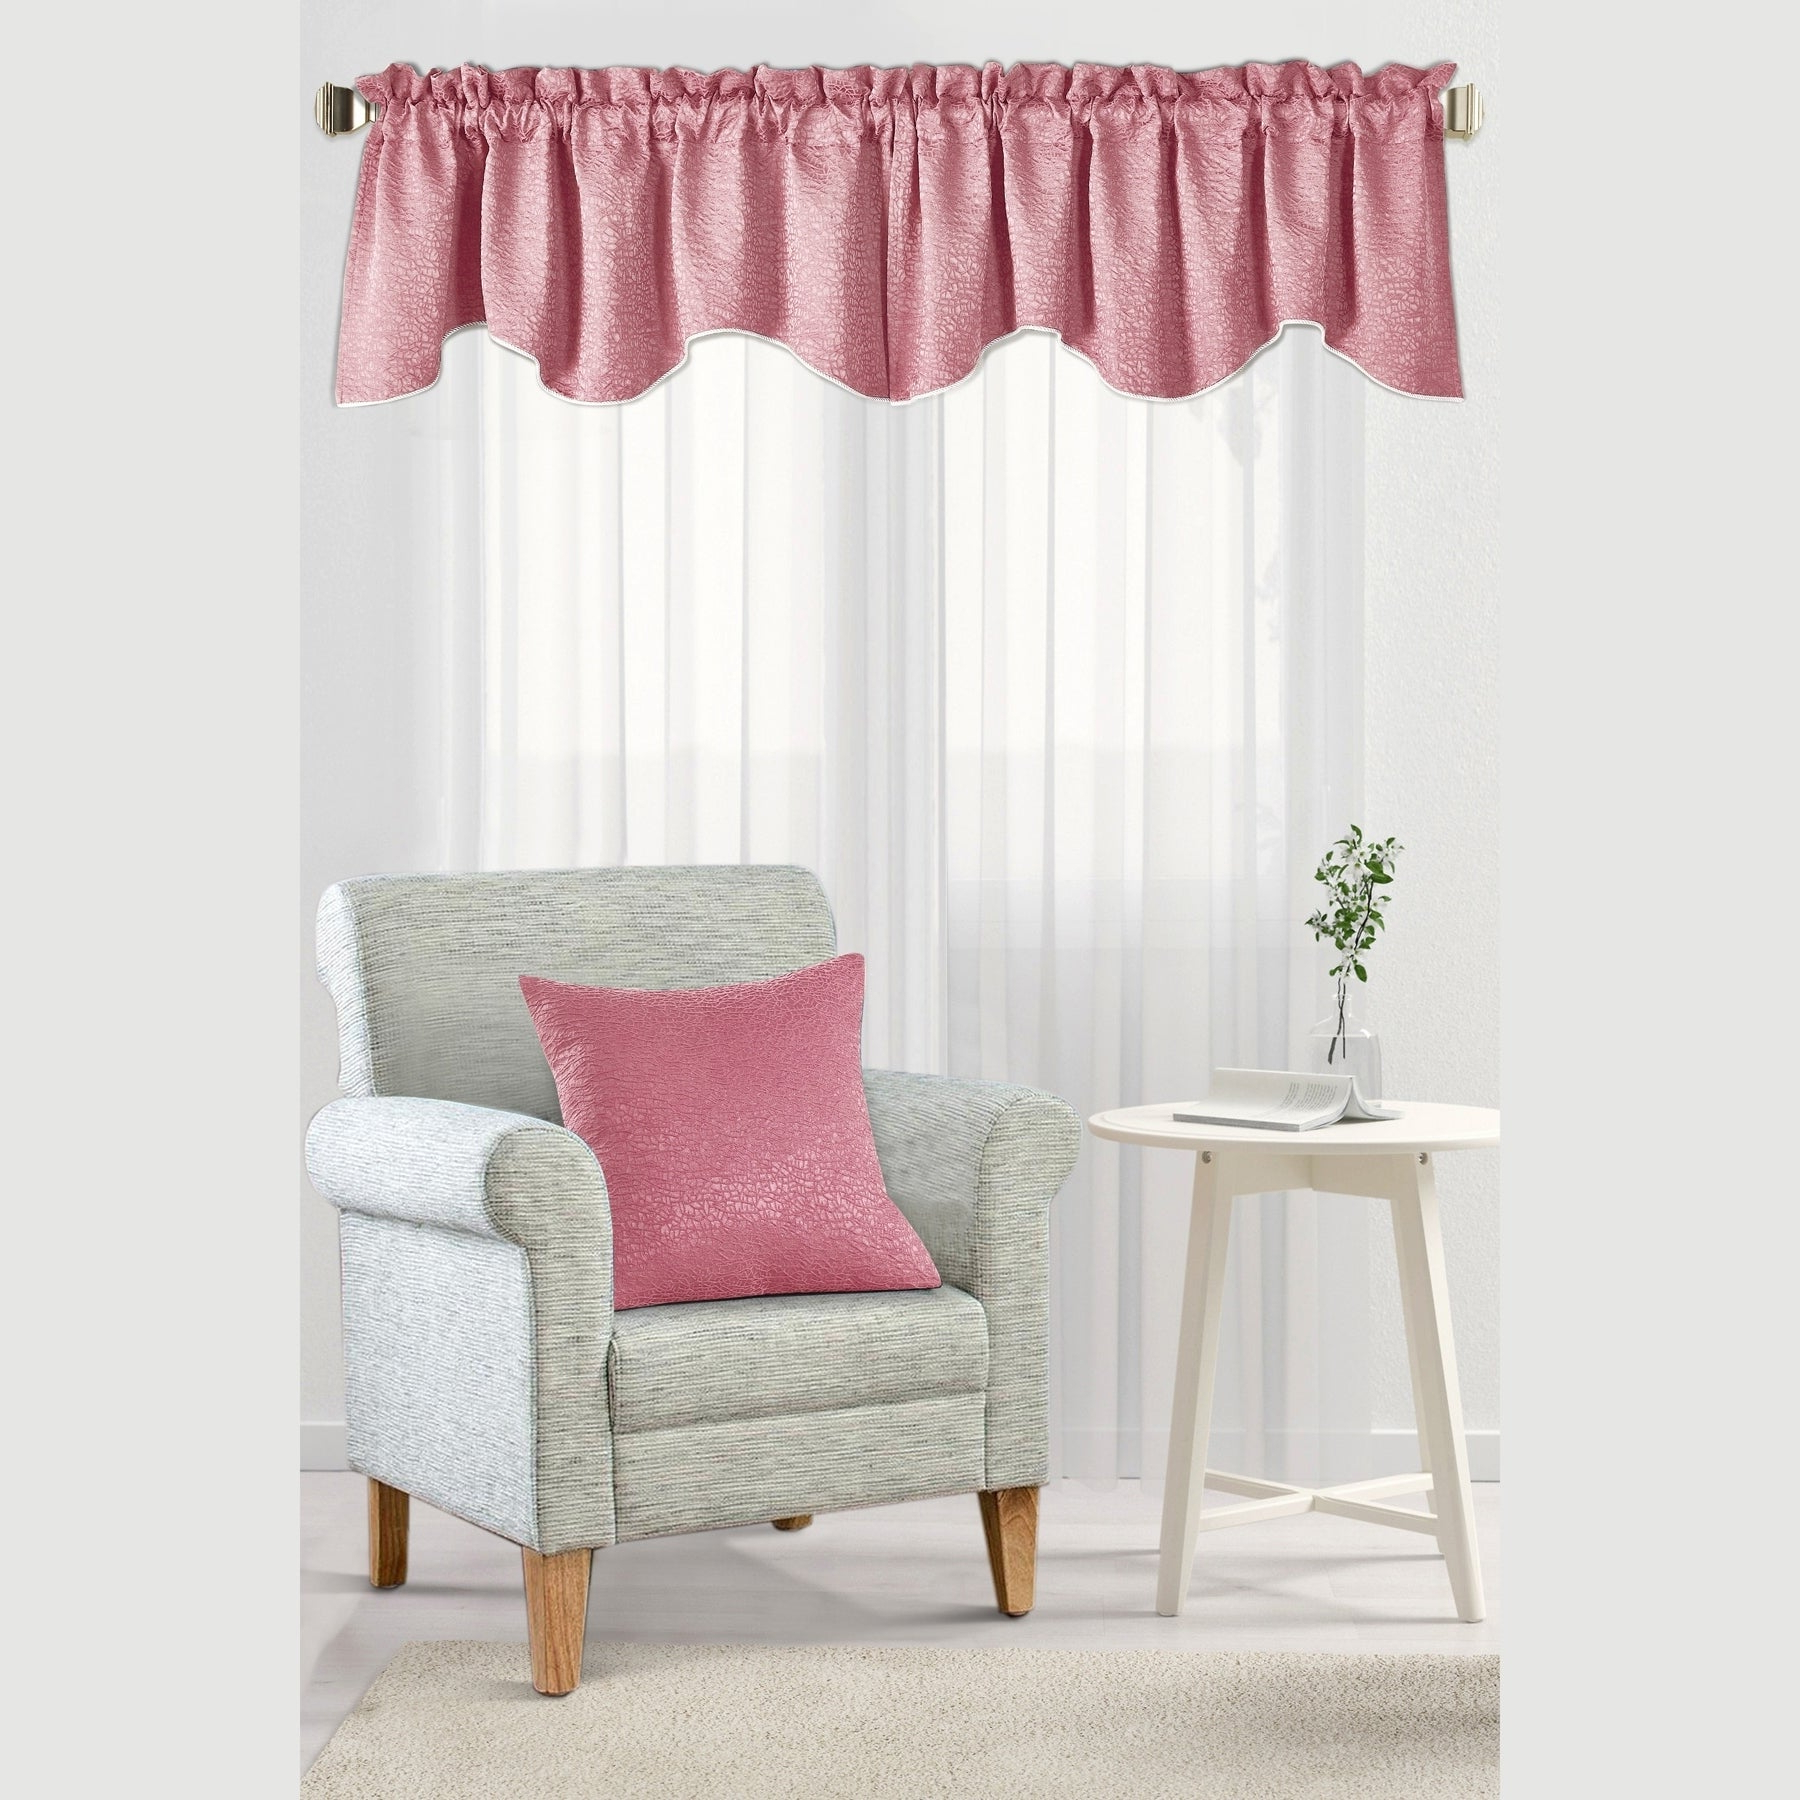 Details About The Curated Nomad Peralta Jacquard Chenille Window Valance & Pertaining To Popular The Curated Nomad Duane Jacquard Grommet Top Curtain Panel Pairs (View 12 of 21)